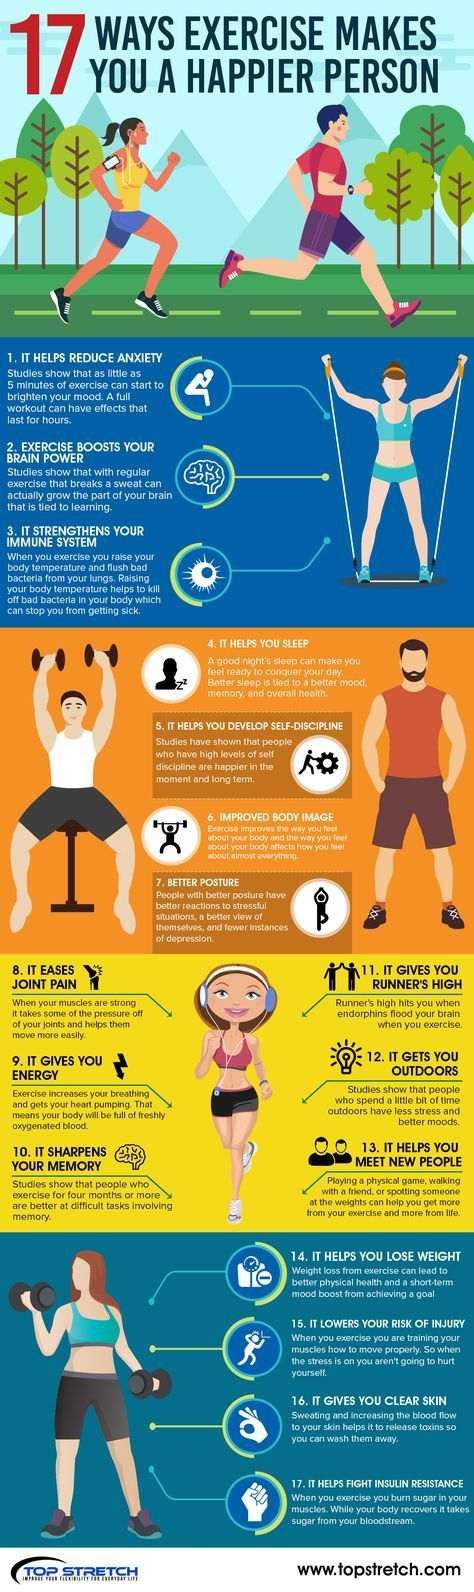 Medical weight loss the woodlands tx